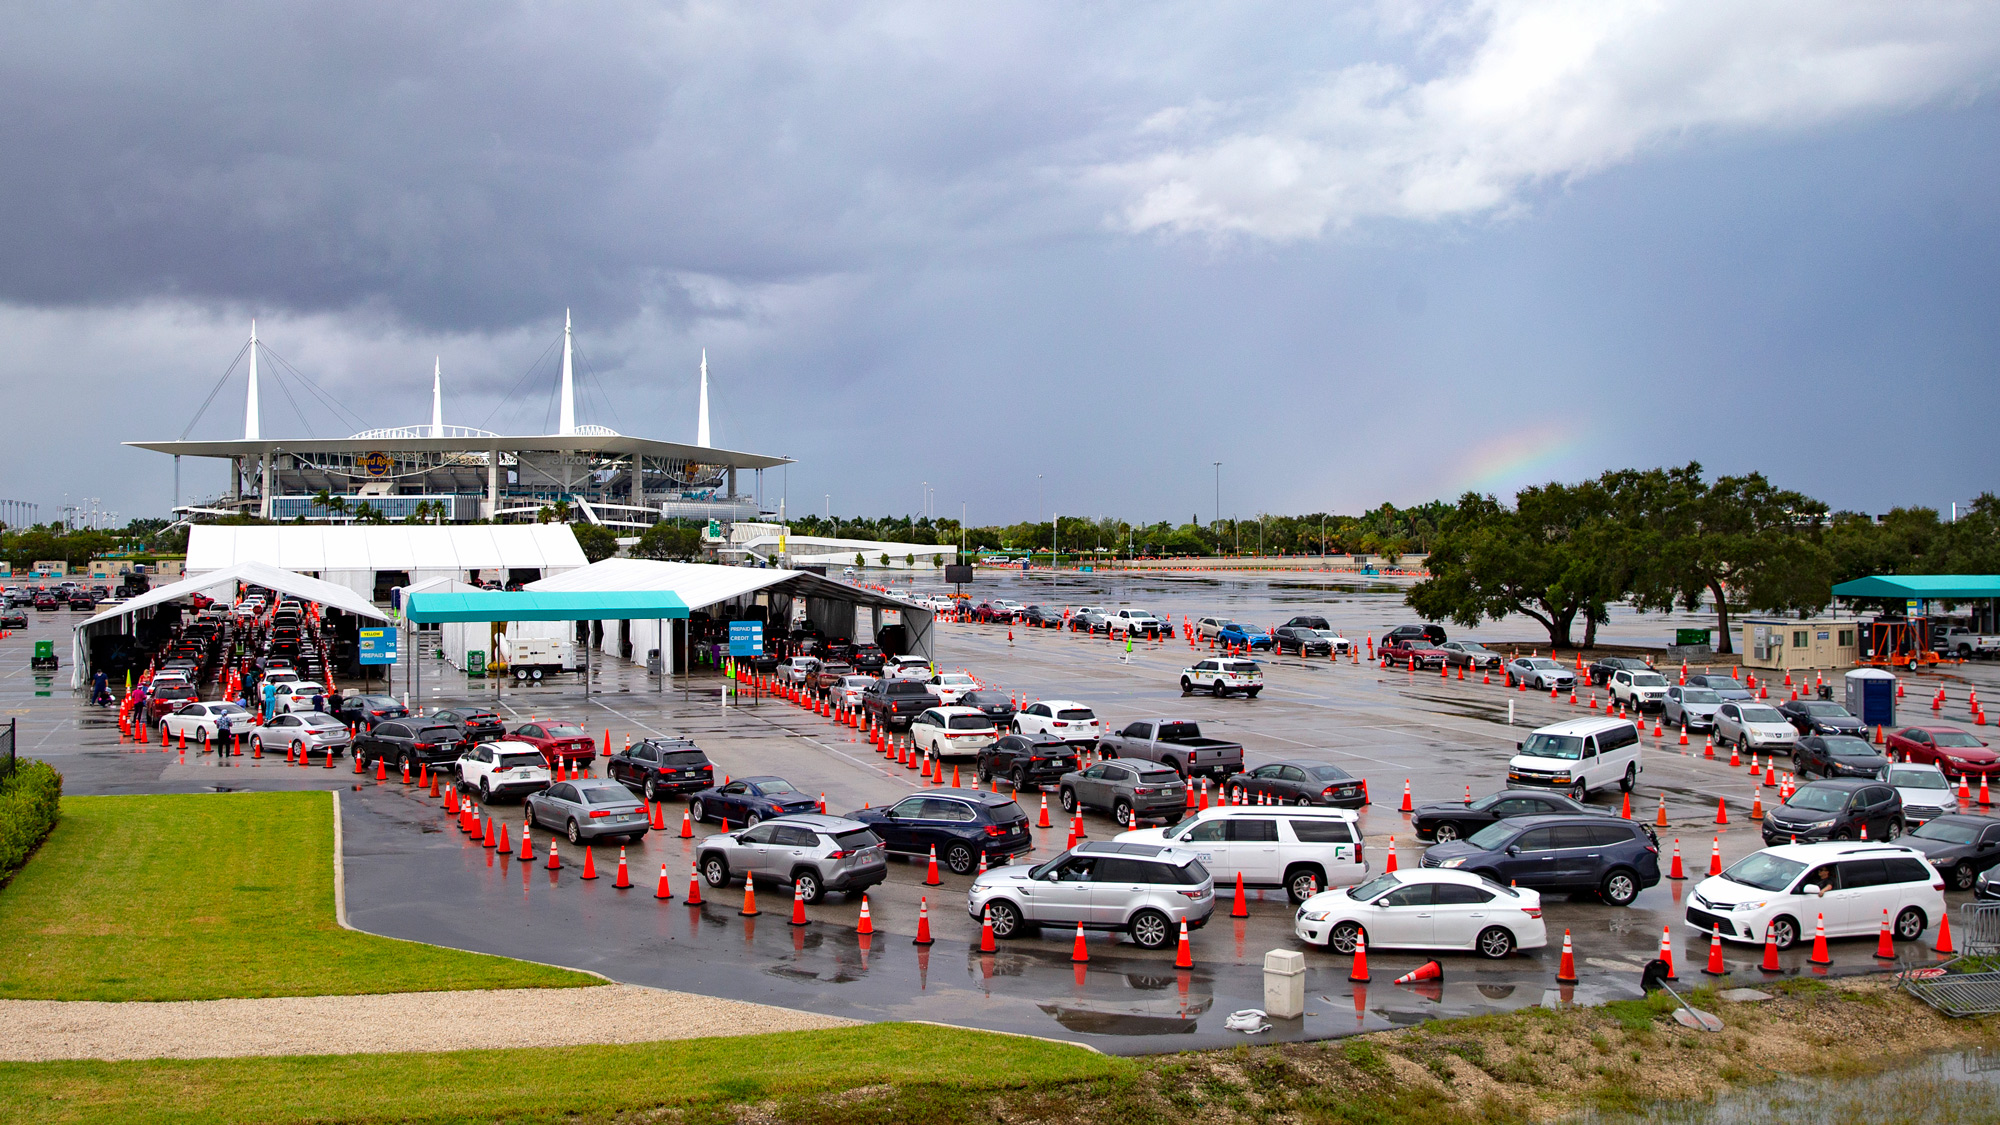 Vehicles line up as healthcare workers help to check-in people for testing at the COVID-19 drive-thru testing center at Hard Rock Stadium in Miami Gardens, Florida, on November 22.